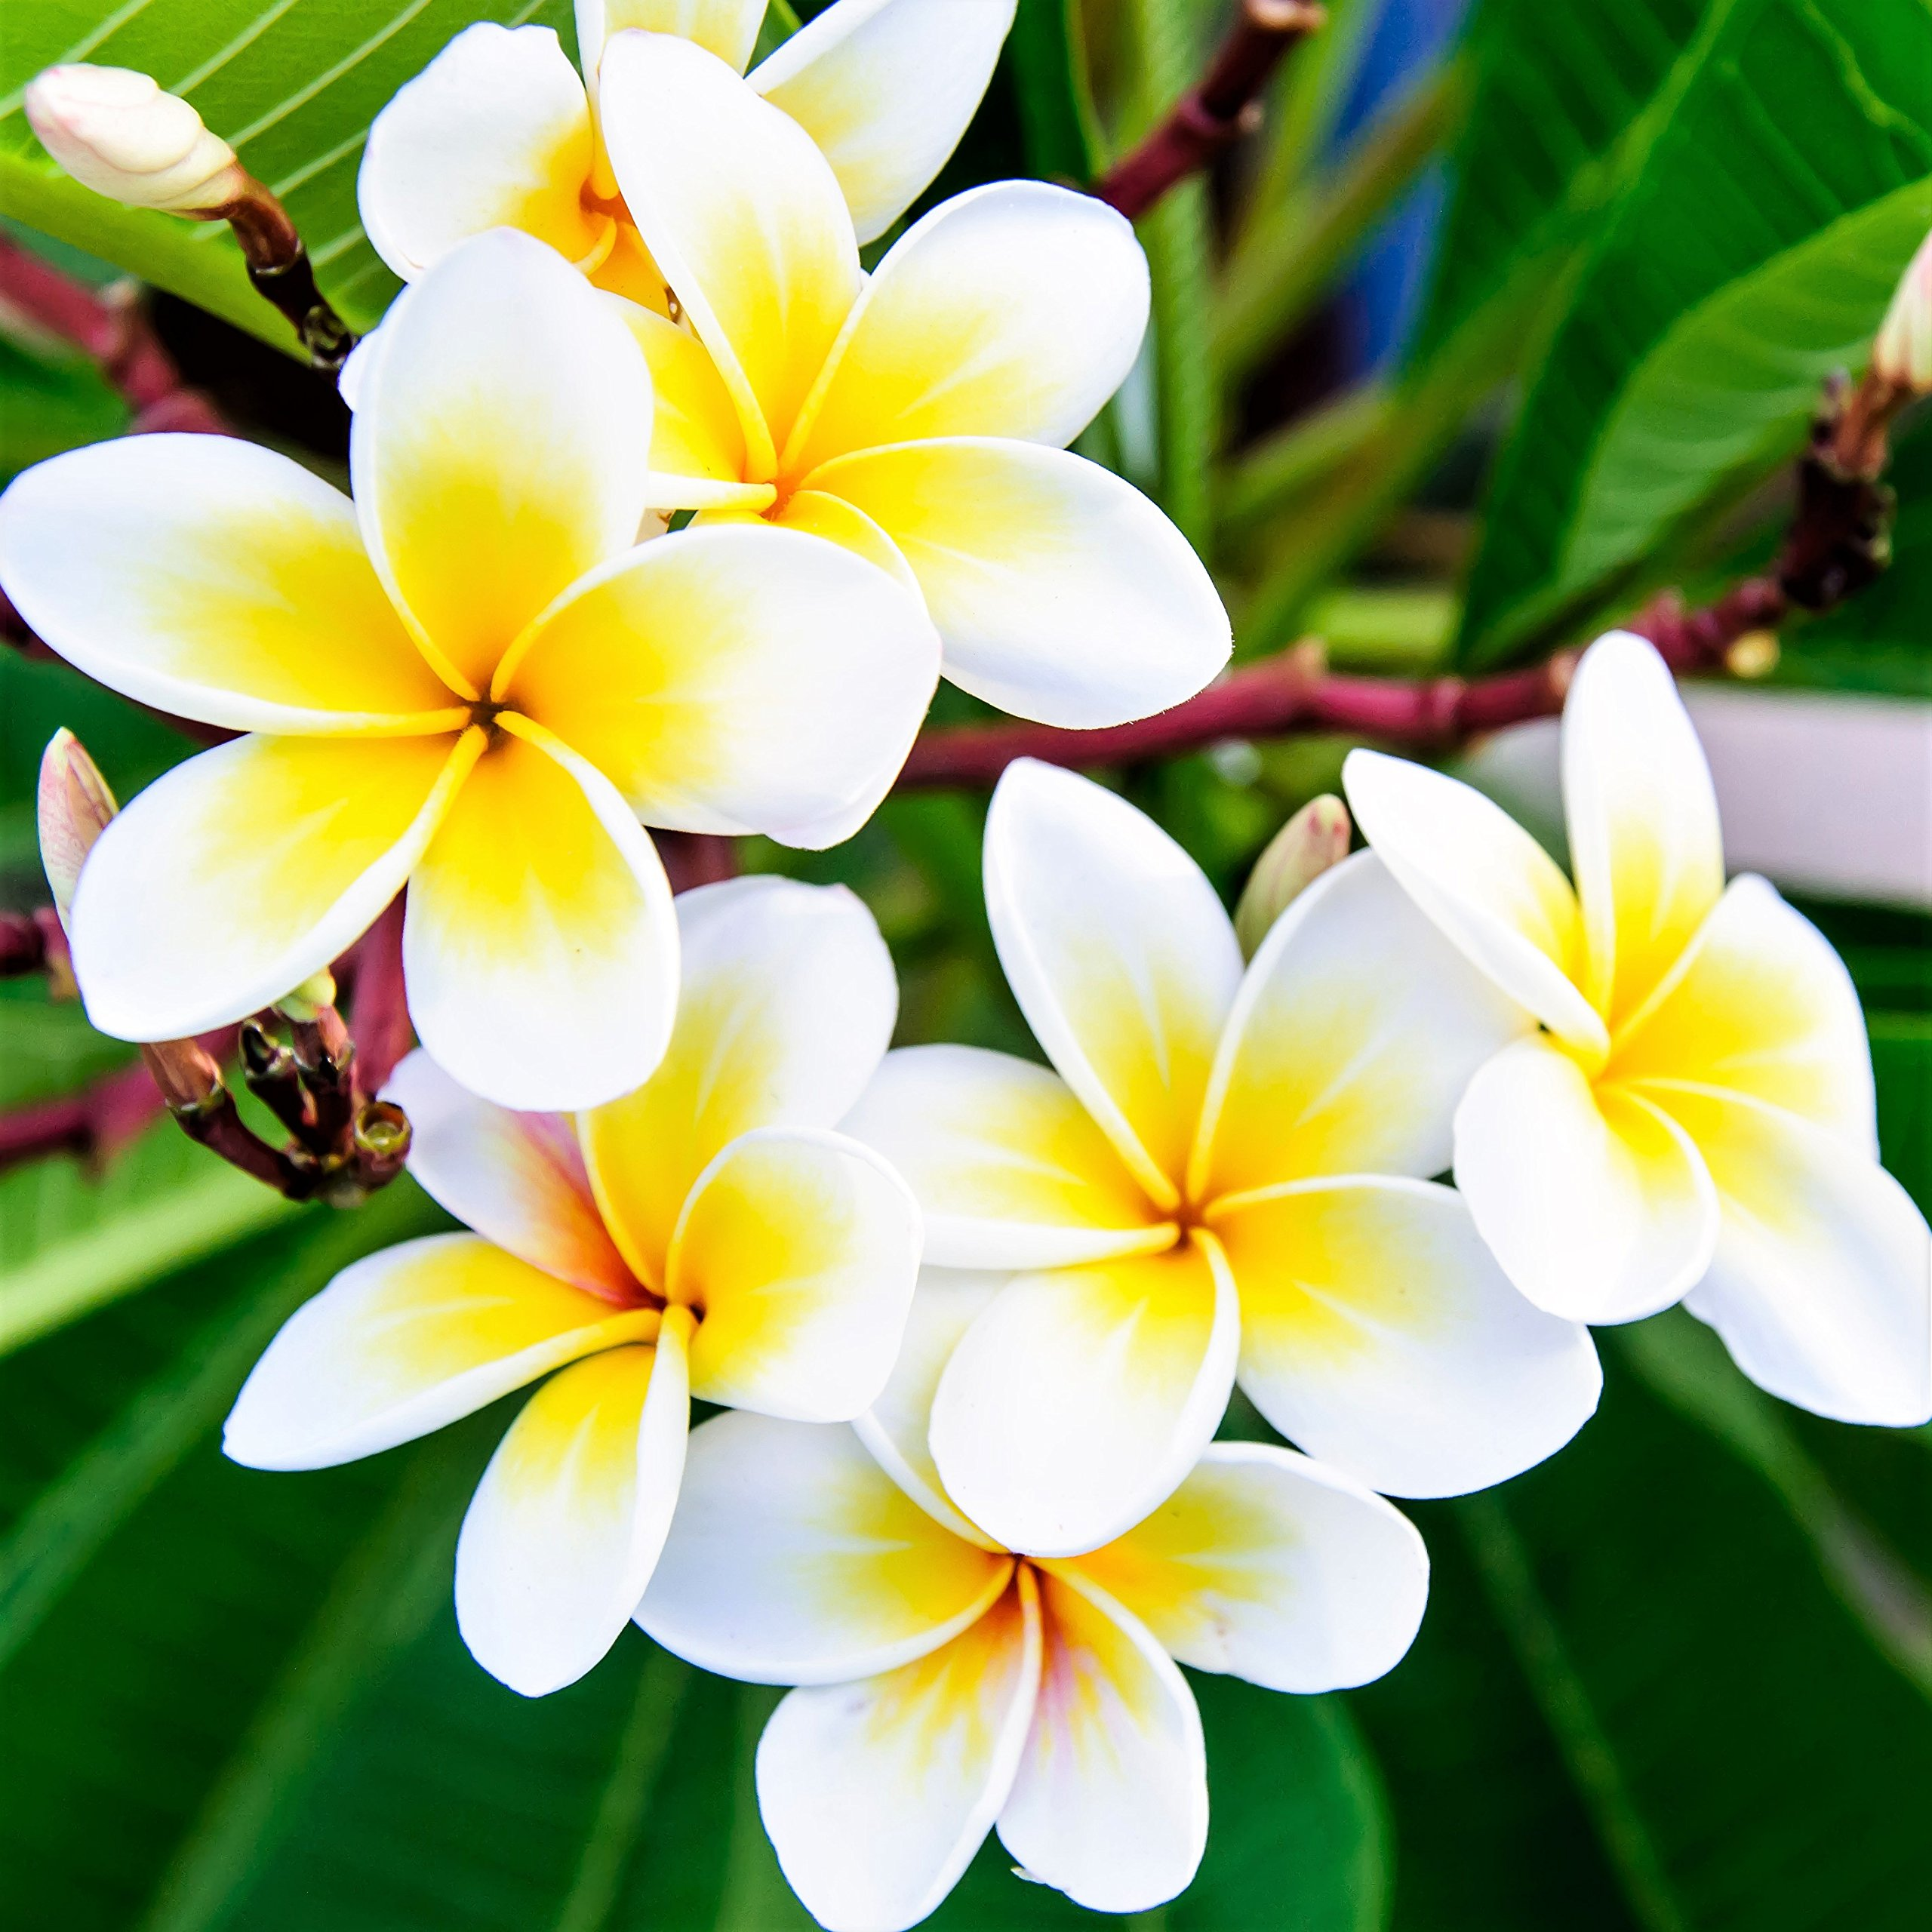 Plumeria - Select Yellows & Whites Plants - Not Just Cuttings. Fragrant Blooms This Summer. Stout 12''-14'' well-rooted plant | Ships From Easy to Grow TM